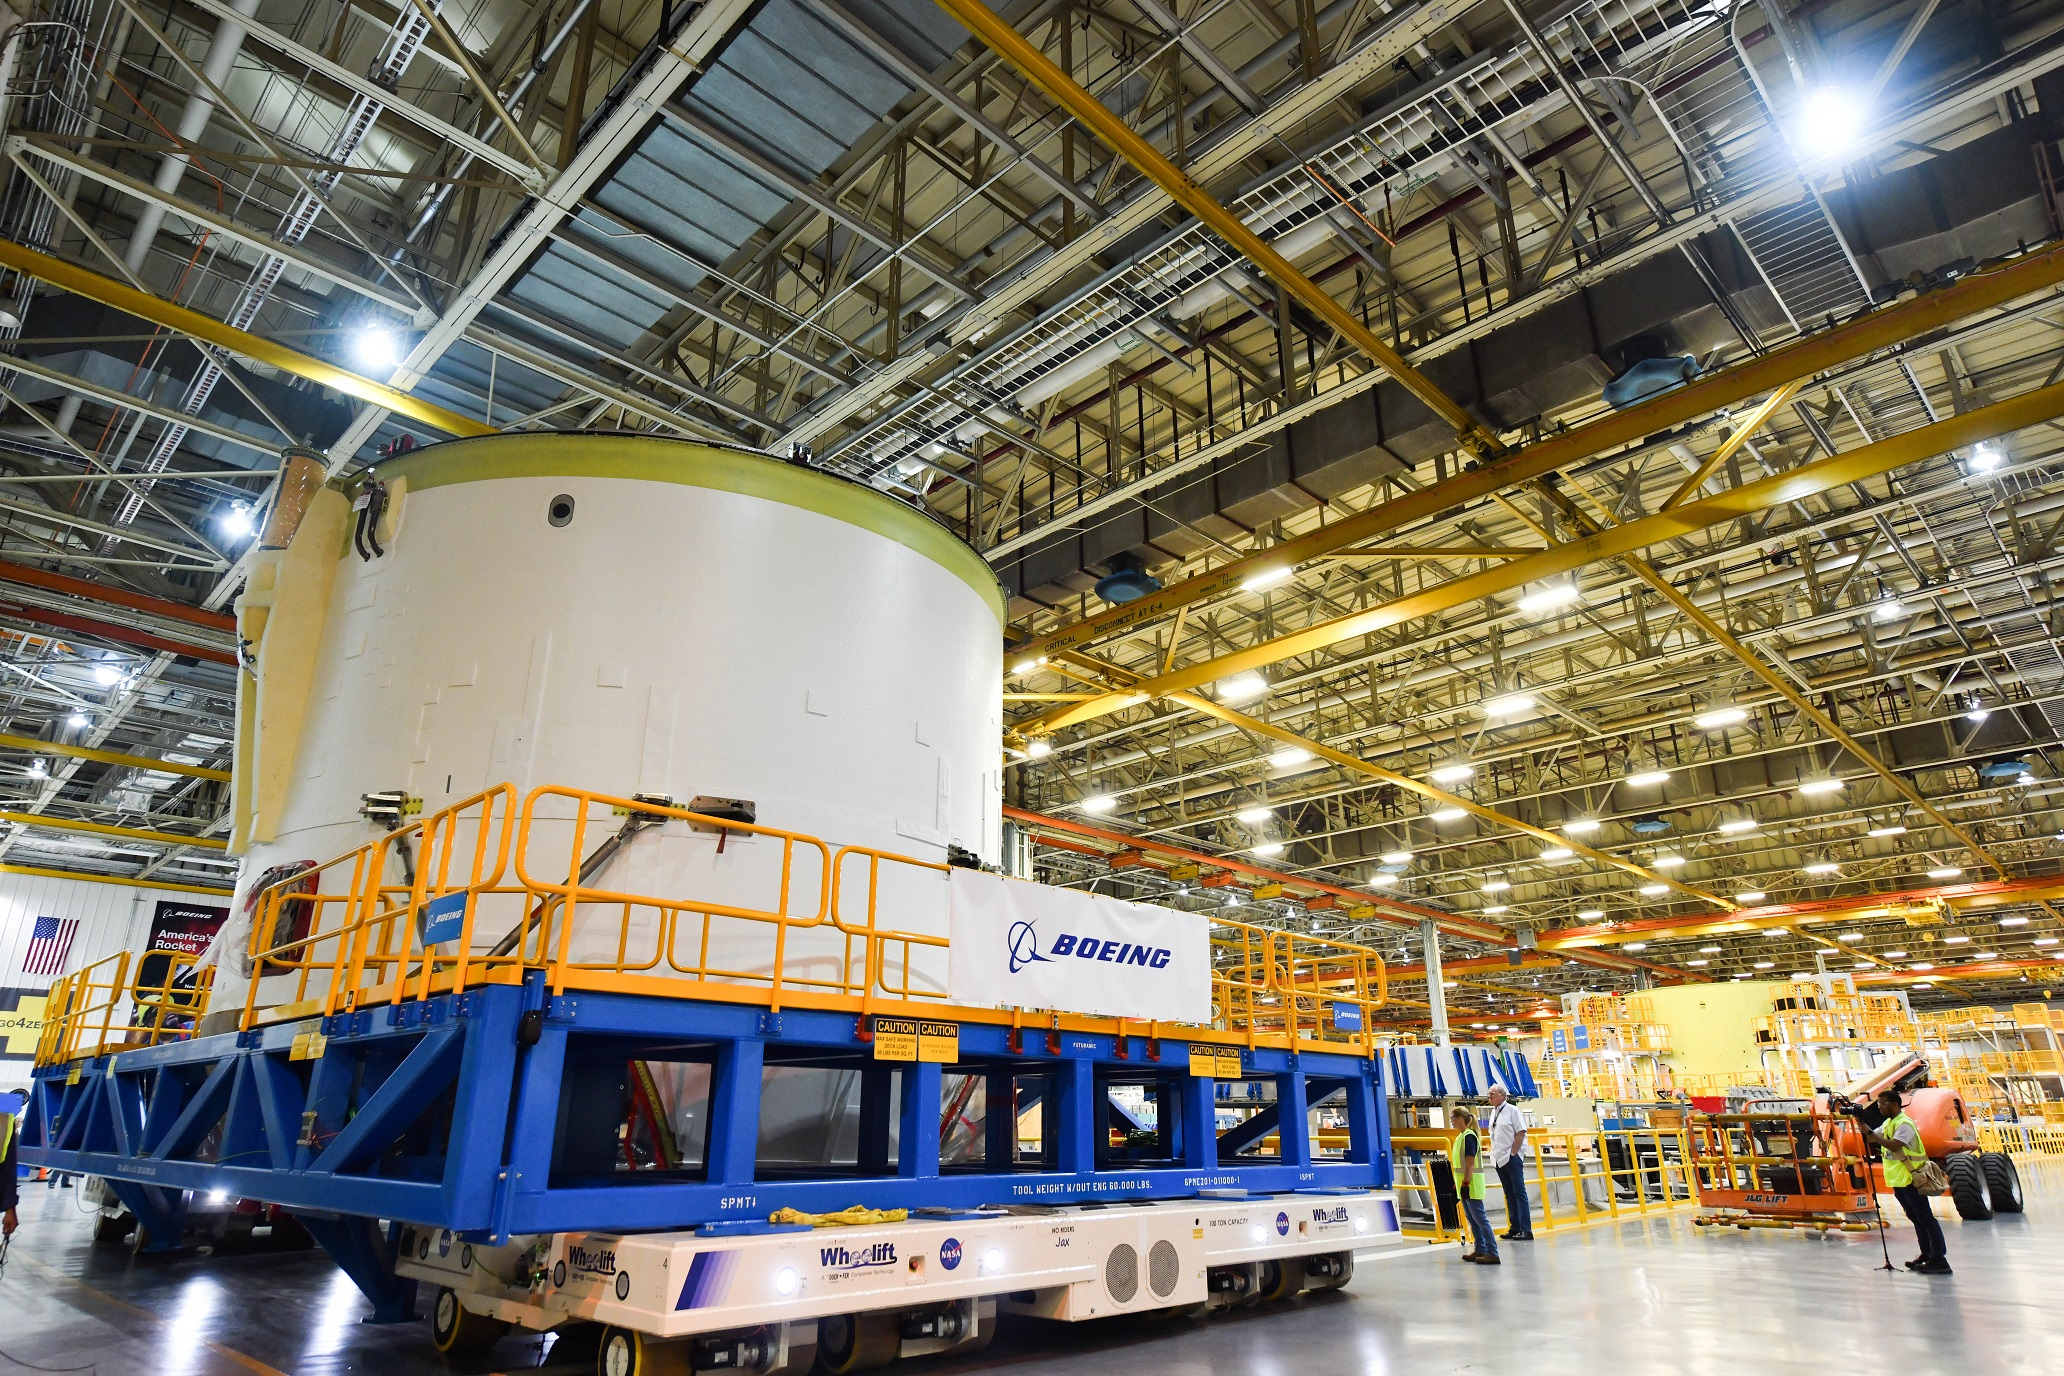 boeing wiring harness boeing reorganizing plans as it builds second nasa sls core stage  nasa sls core stage